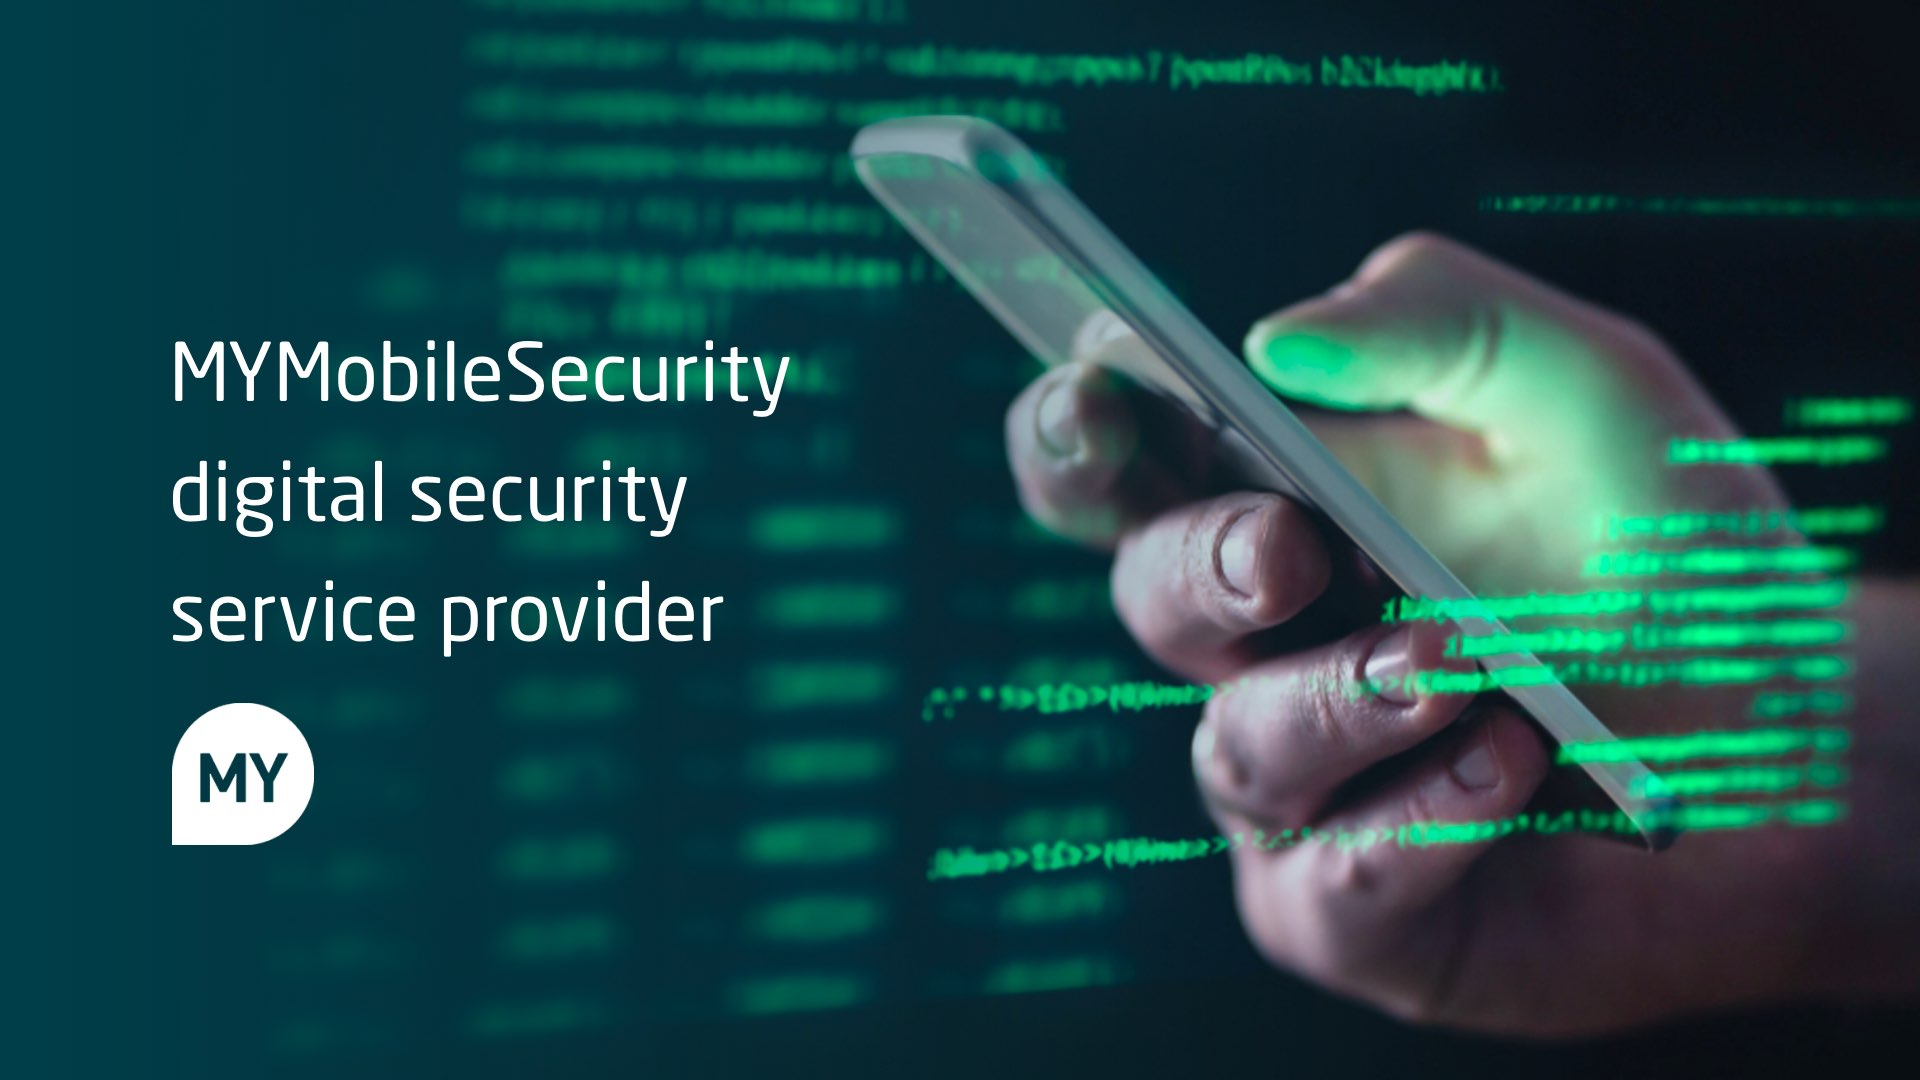 MYMobileSecurity - digital security service provider